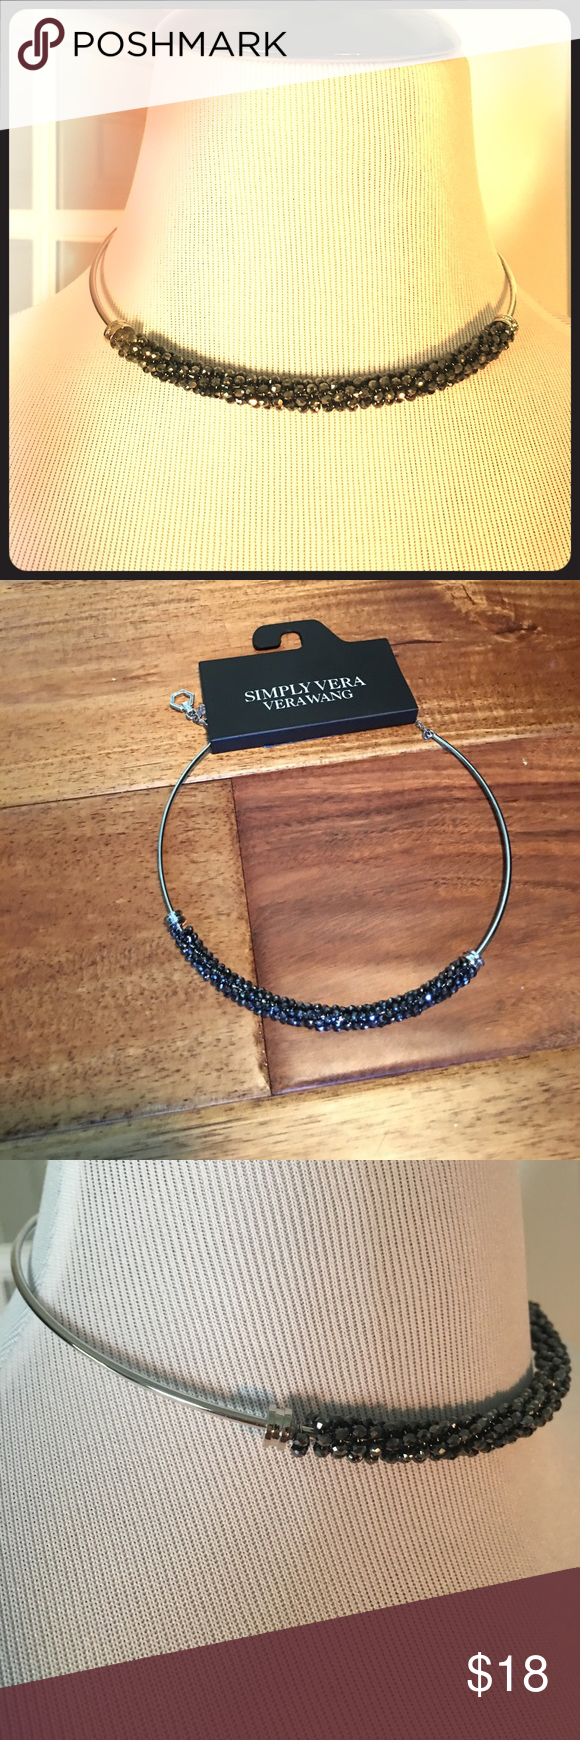 Vera Wang Choker Unique Vera Wang Choker has just enough bling to wear when dressing up for the evening or for more casual t-shirt and jeans days.  Clasp in the back can adjust and the end of the silver colored chain has beautiful dangling hardware.  Dark colored beads surround the front wire and catch the light perfectly to give you just little sparkle.  💕 Simply Vera Vera Wang Jewelry Necklaces